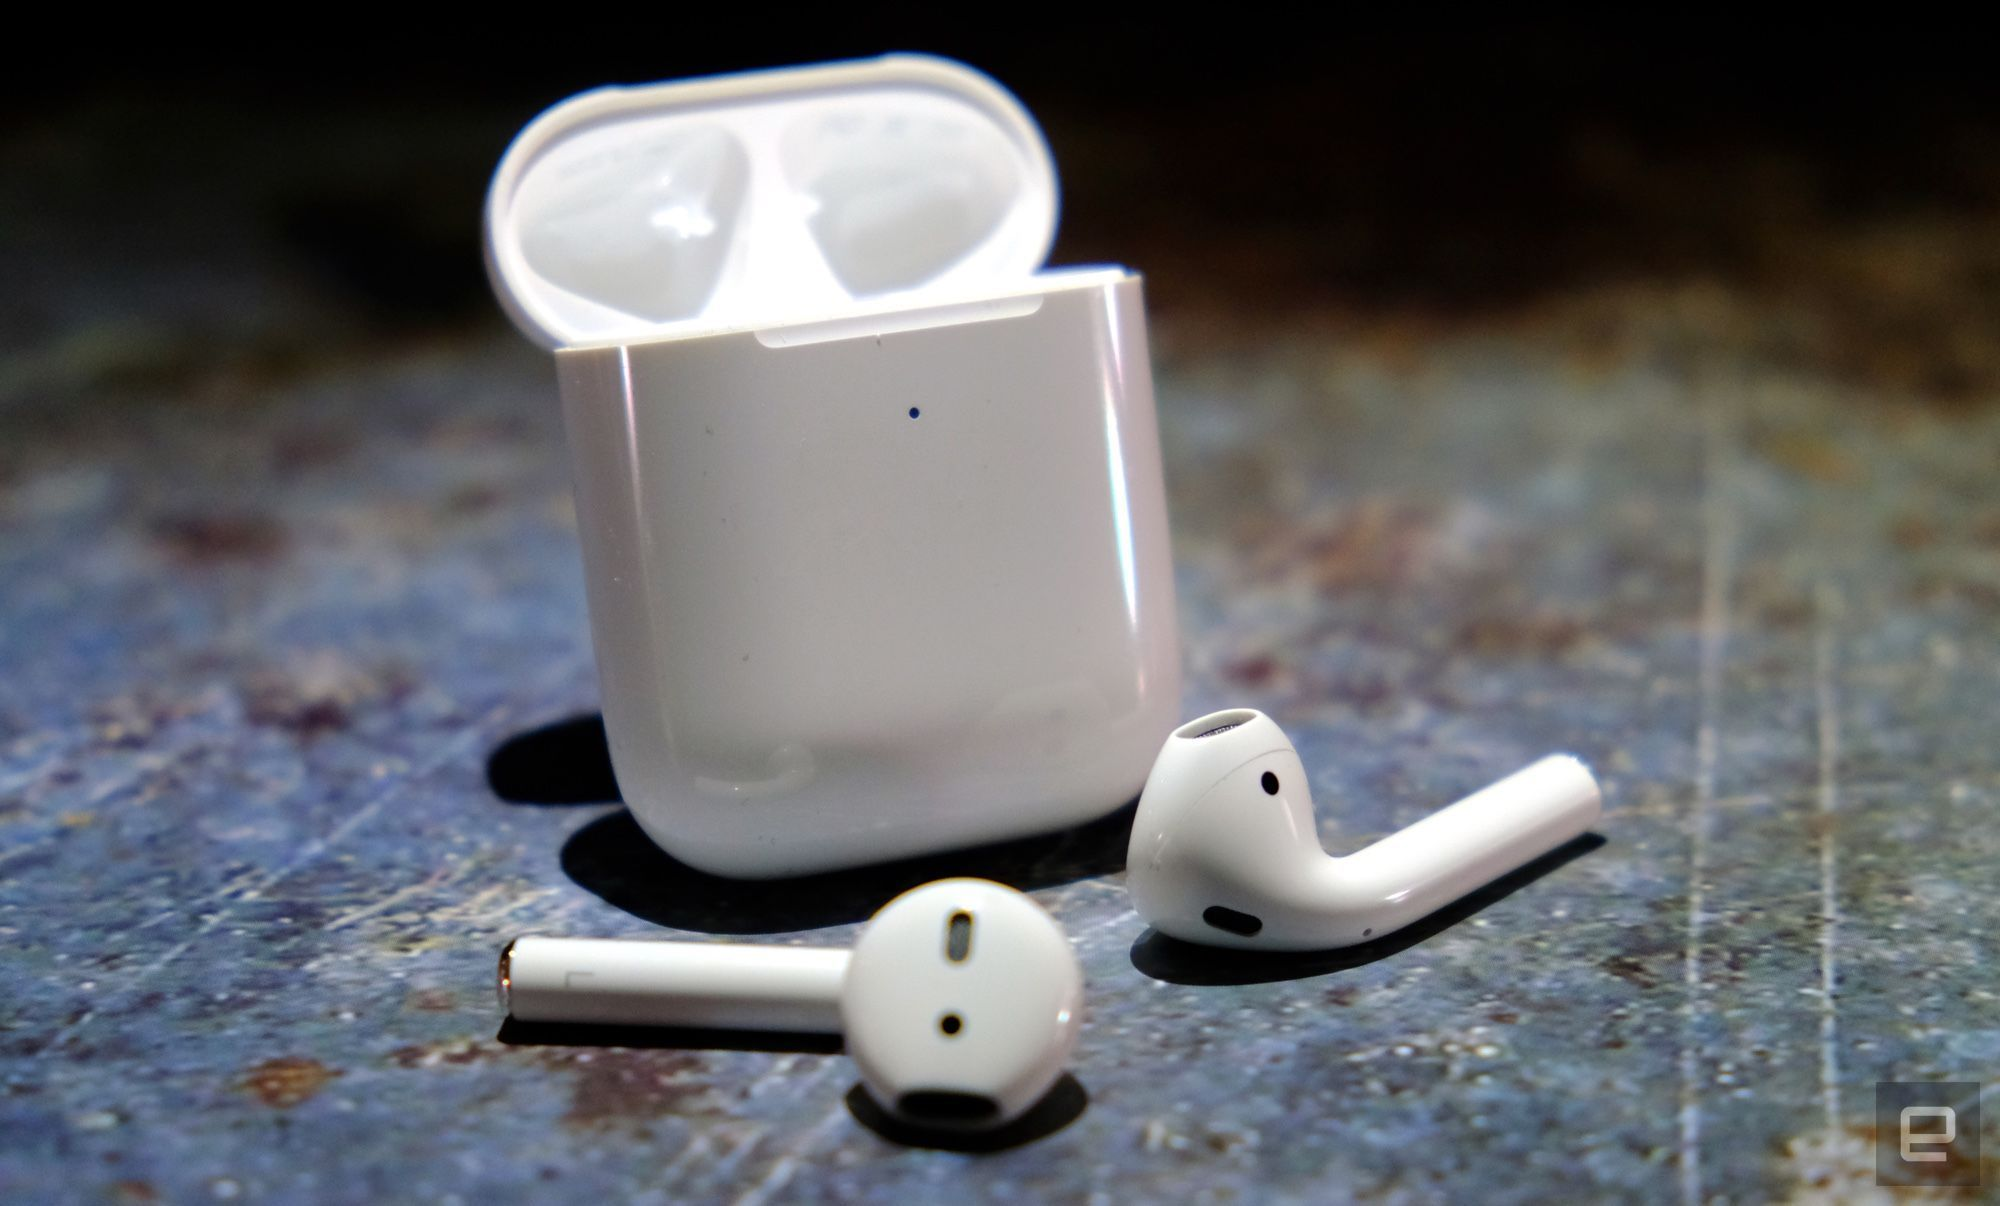 Apple Airpods Drop To 100 In New Early Black Friday Sales Engadget